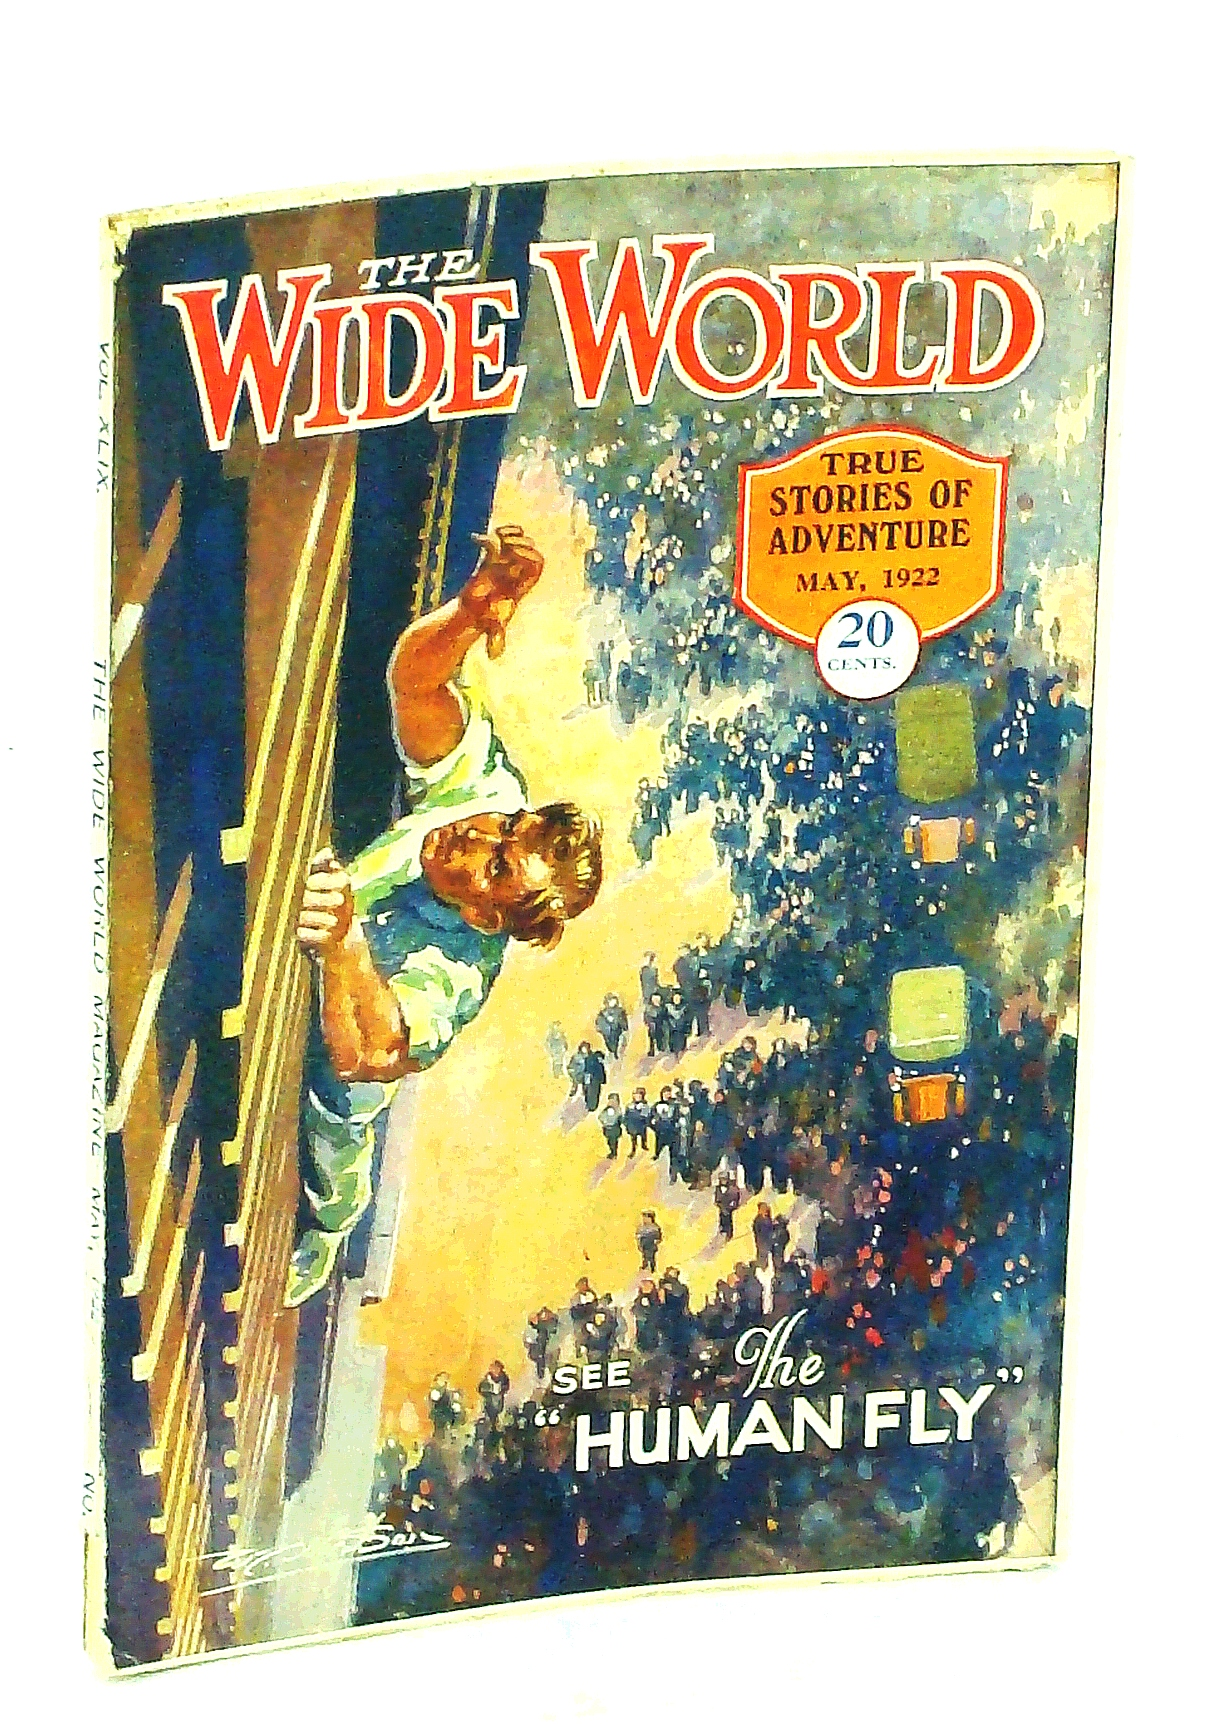 """Image for The Wide World, True Stories of Adventure, May 1922, Vol. 49, No. 289: Jack Williams is """"The Human Fly"""" (Cover Illustration)"""